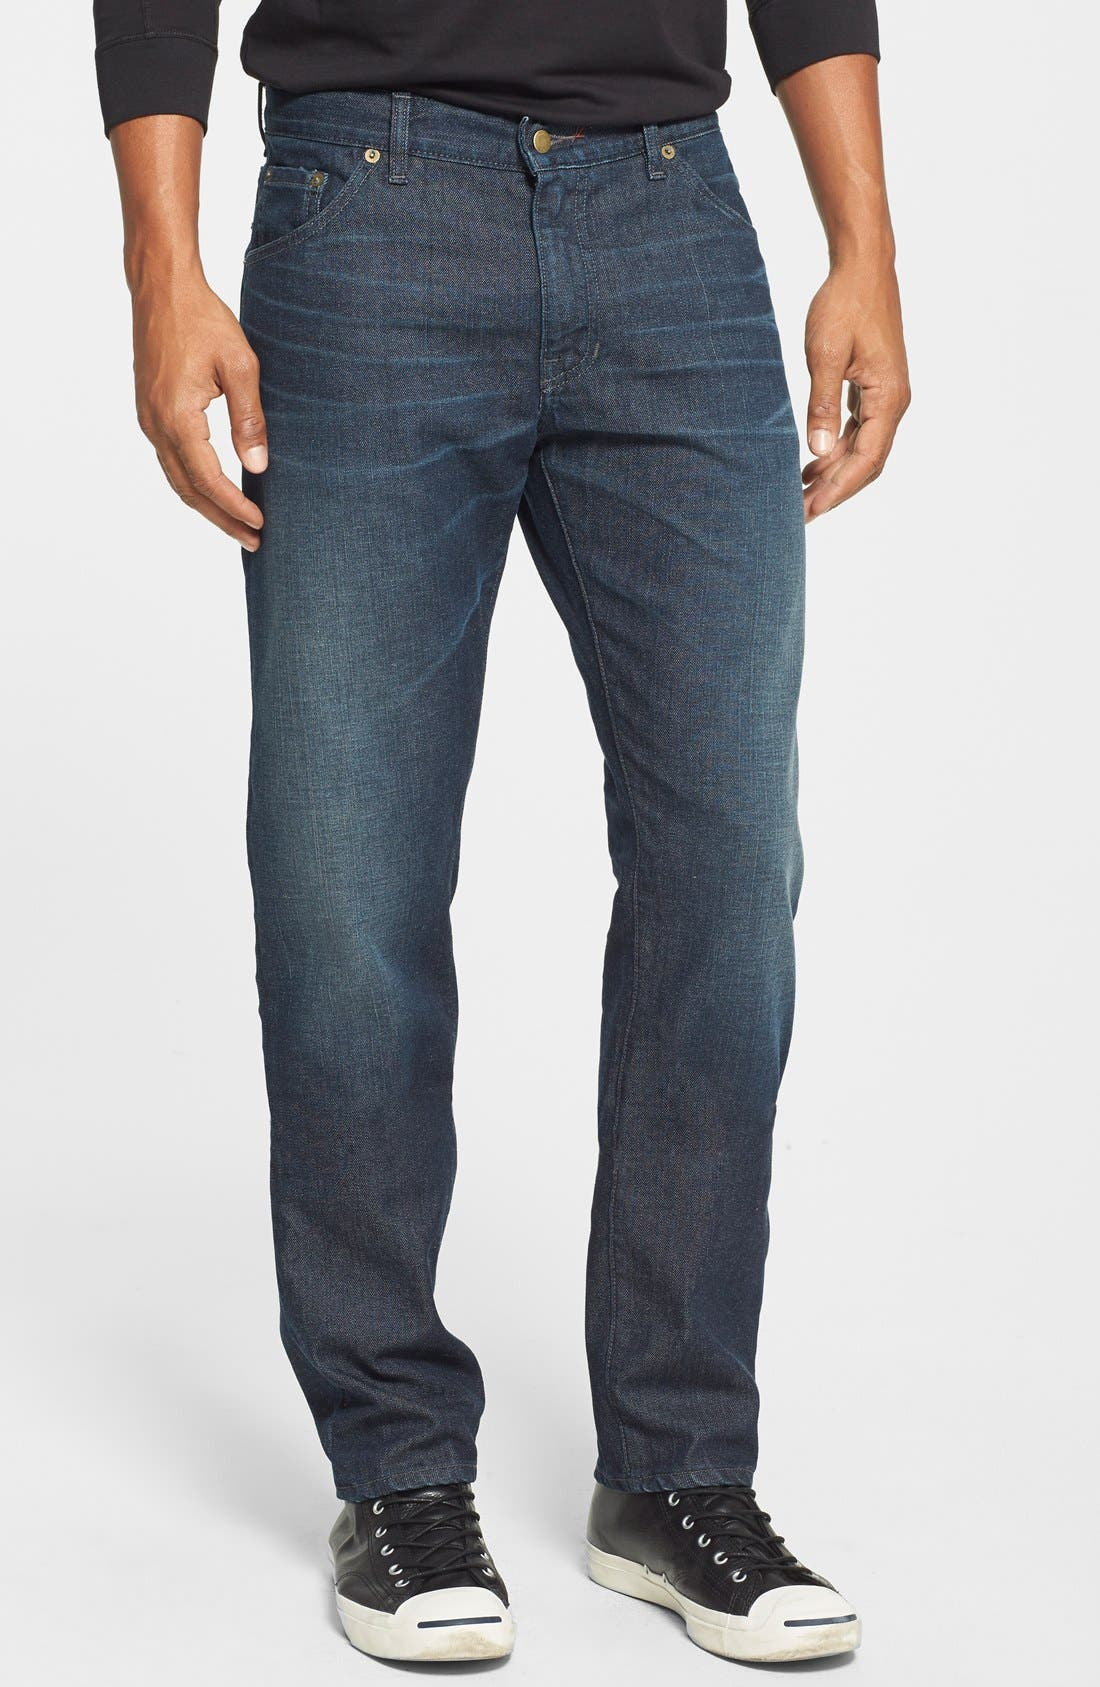 'Martin' Slim Fit Jeans,                         Main,                         color, MASON